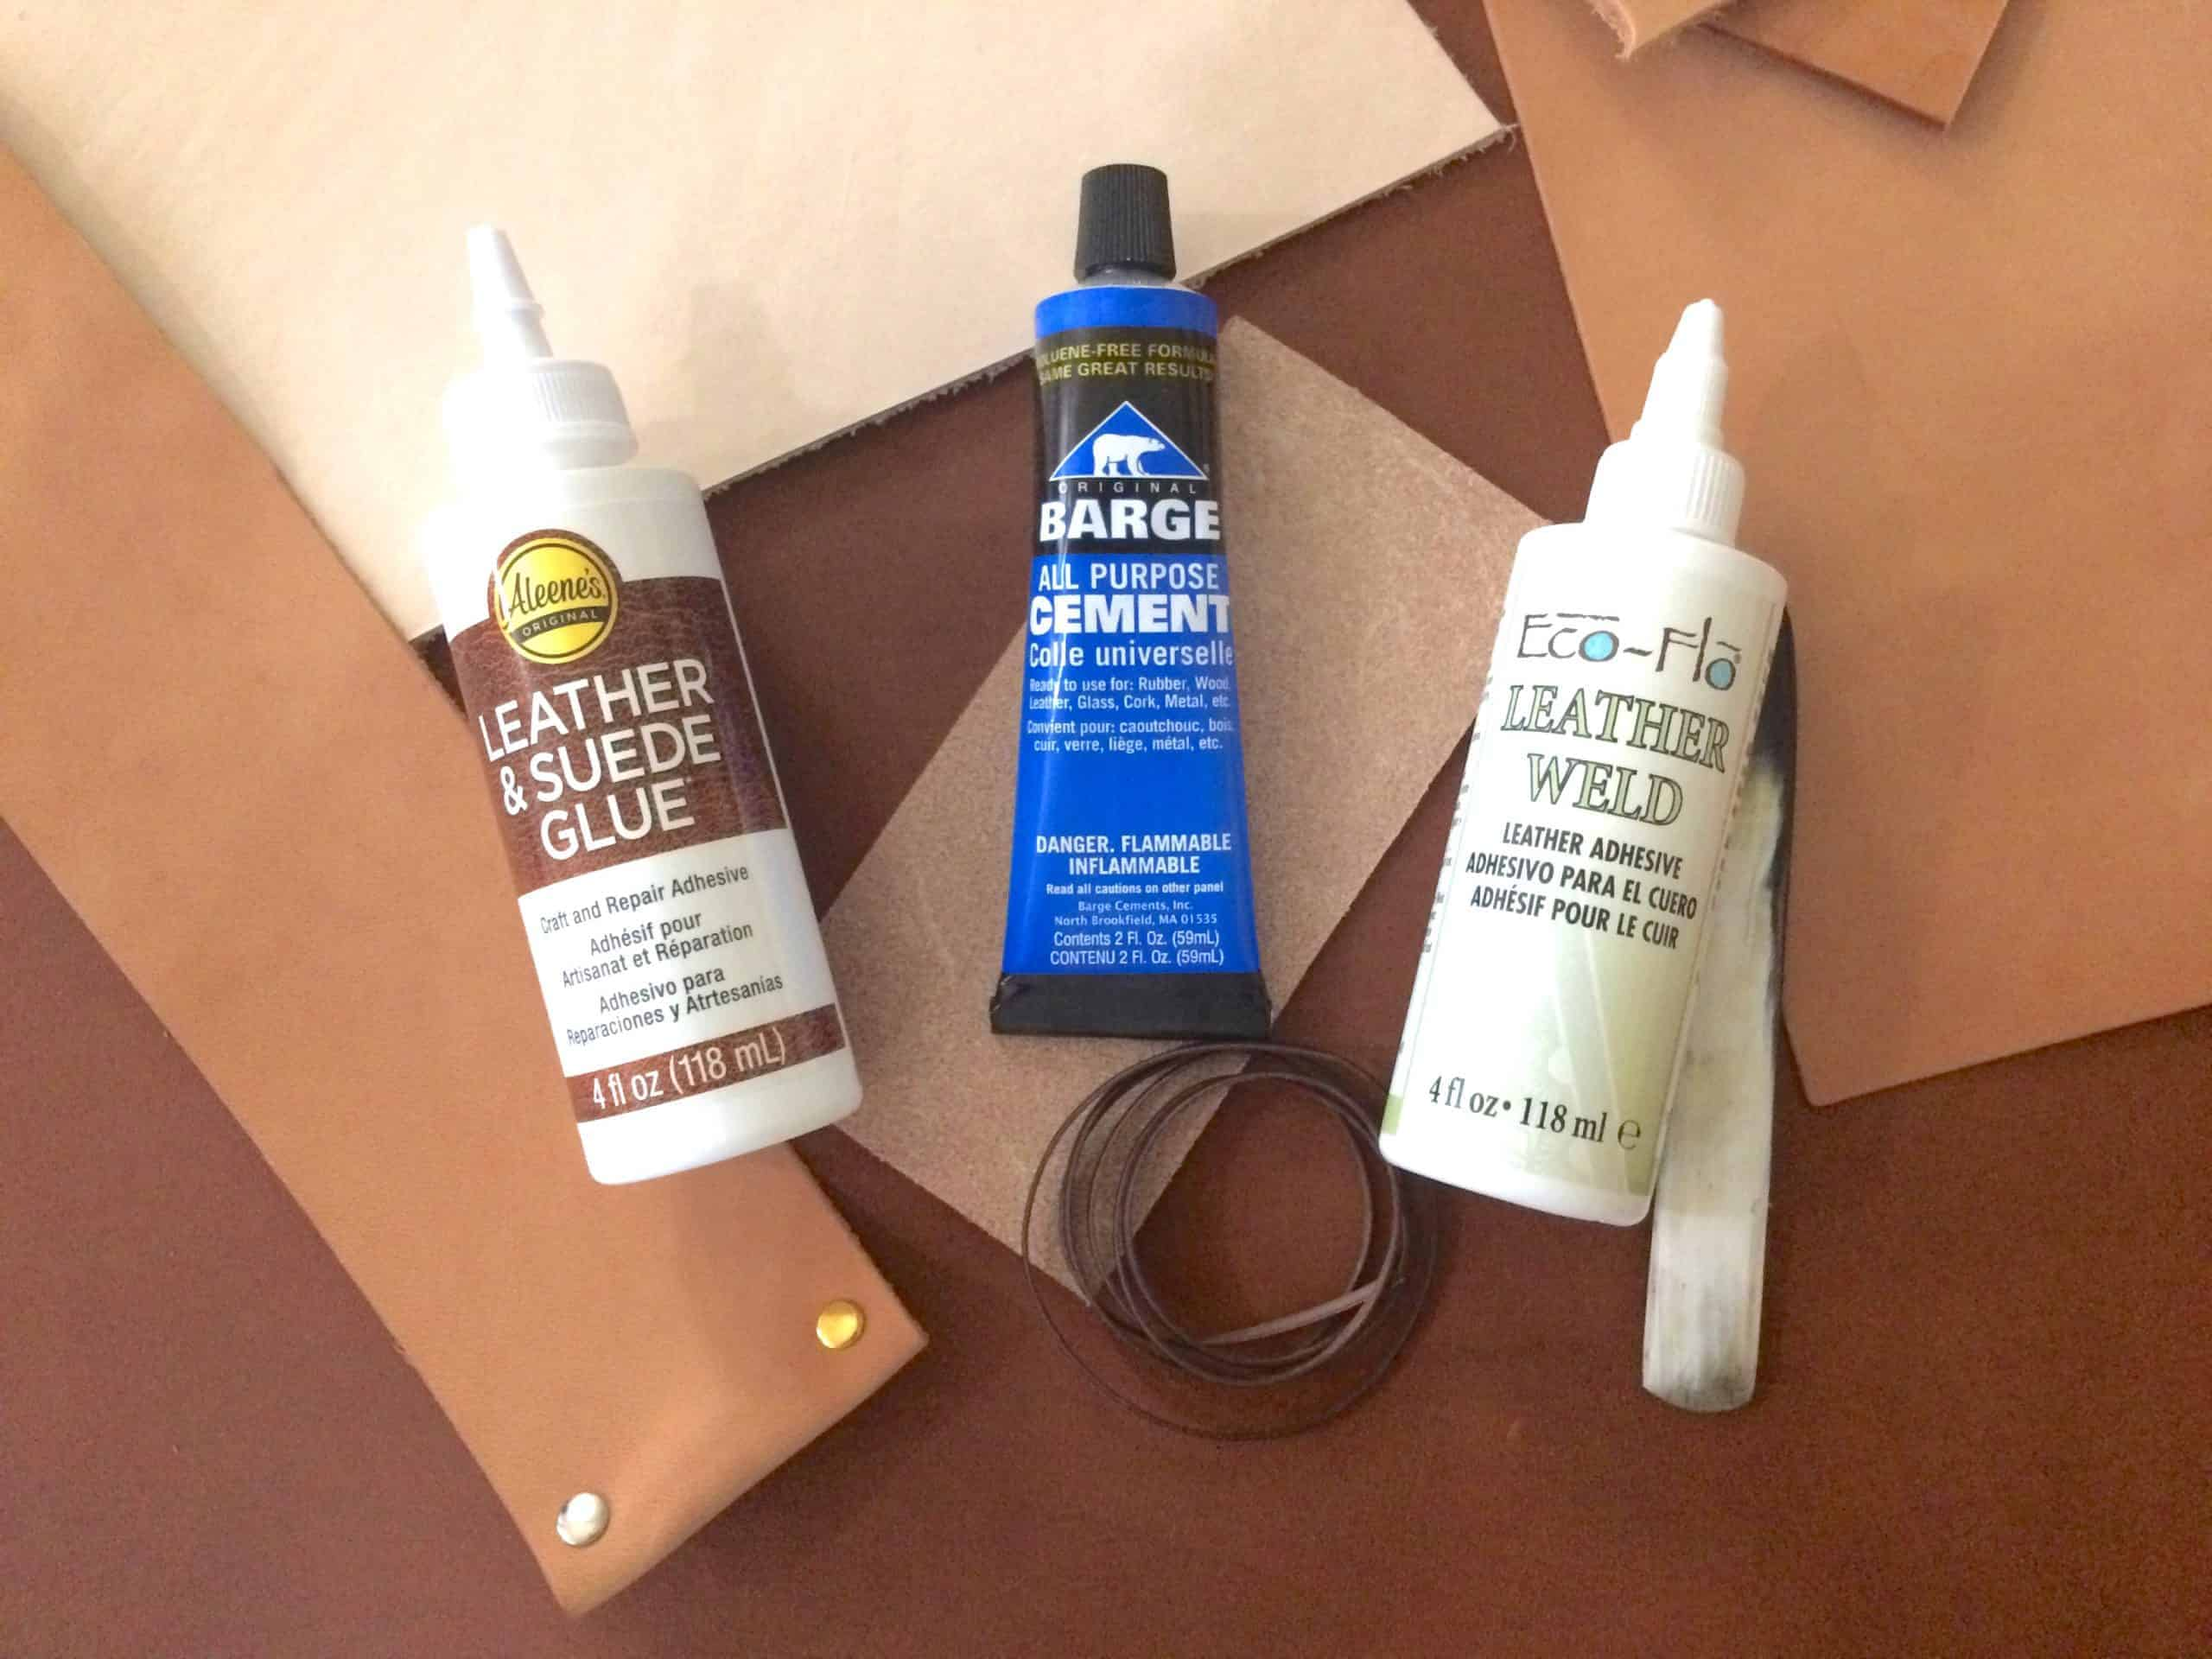 The Best Leather Glue Adhesives When To Use Them